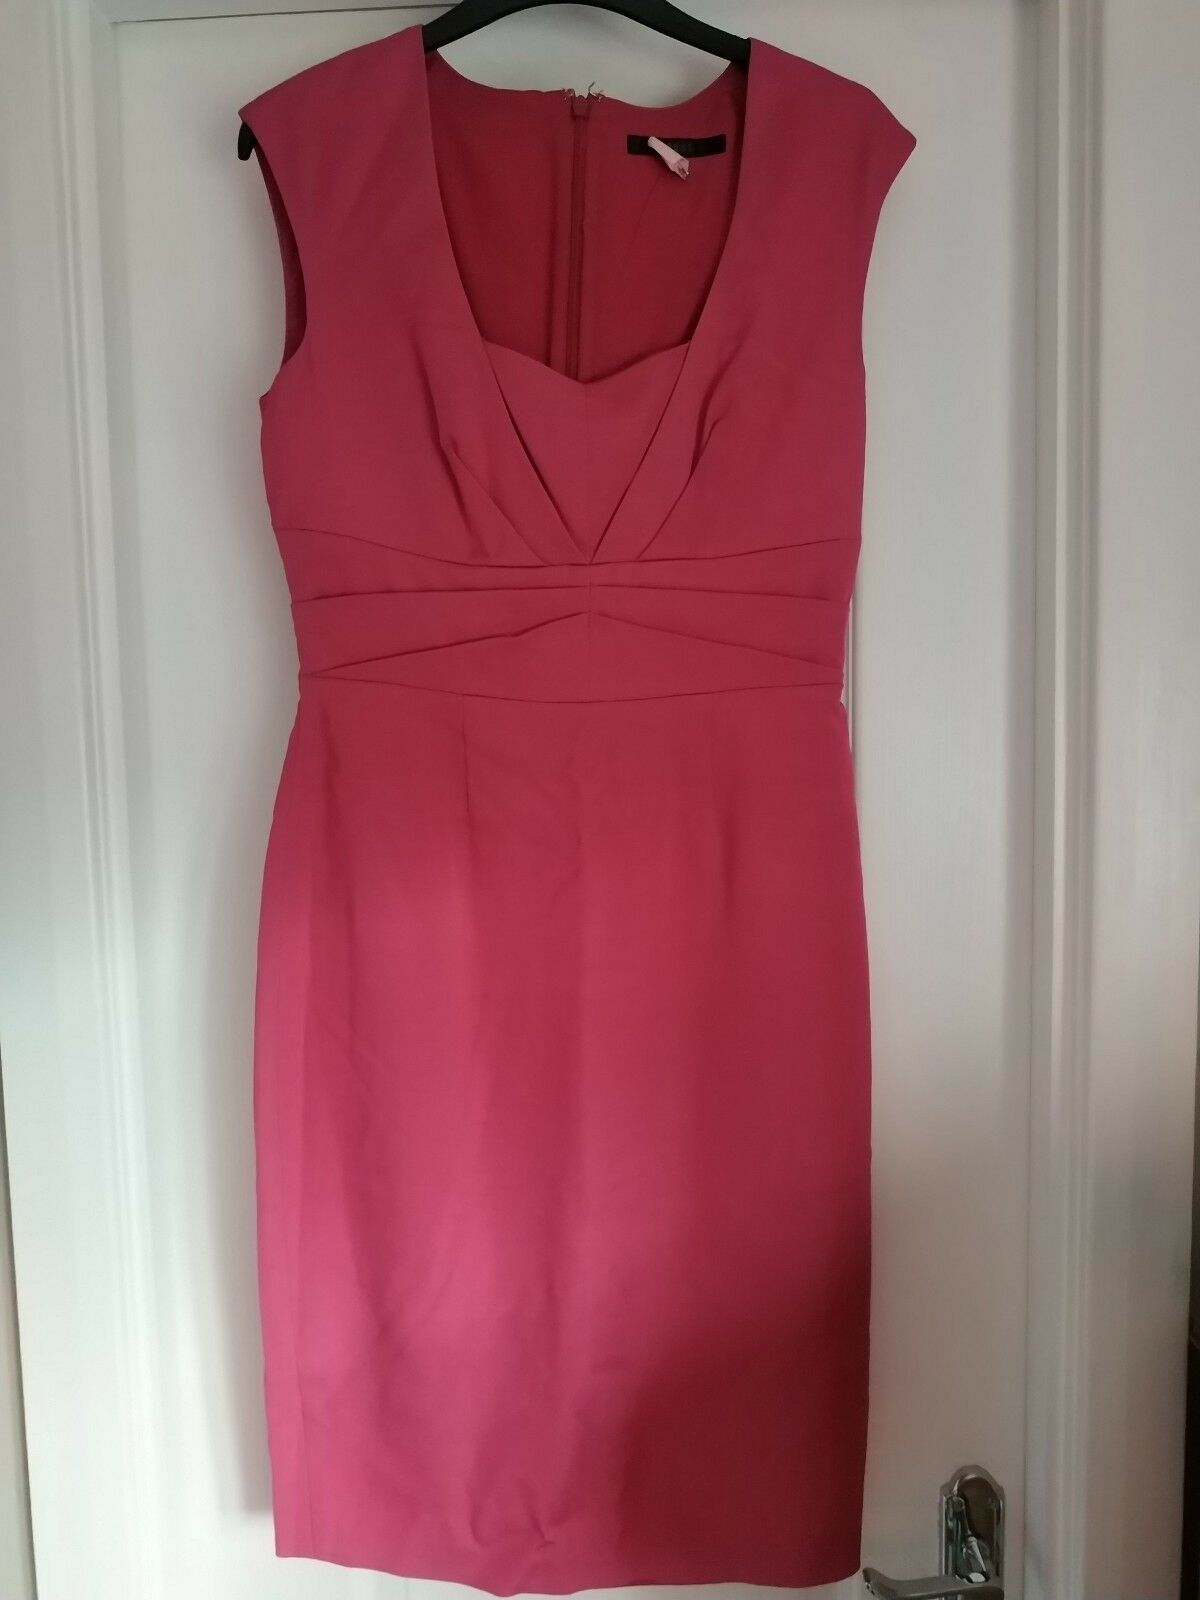 Coast Bright Pink Pencil Dress Size 10 Immaculate Office Work Party